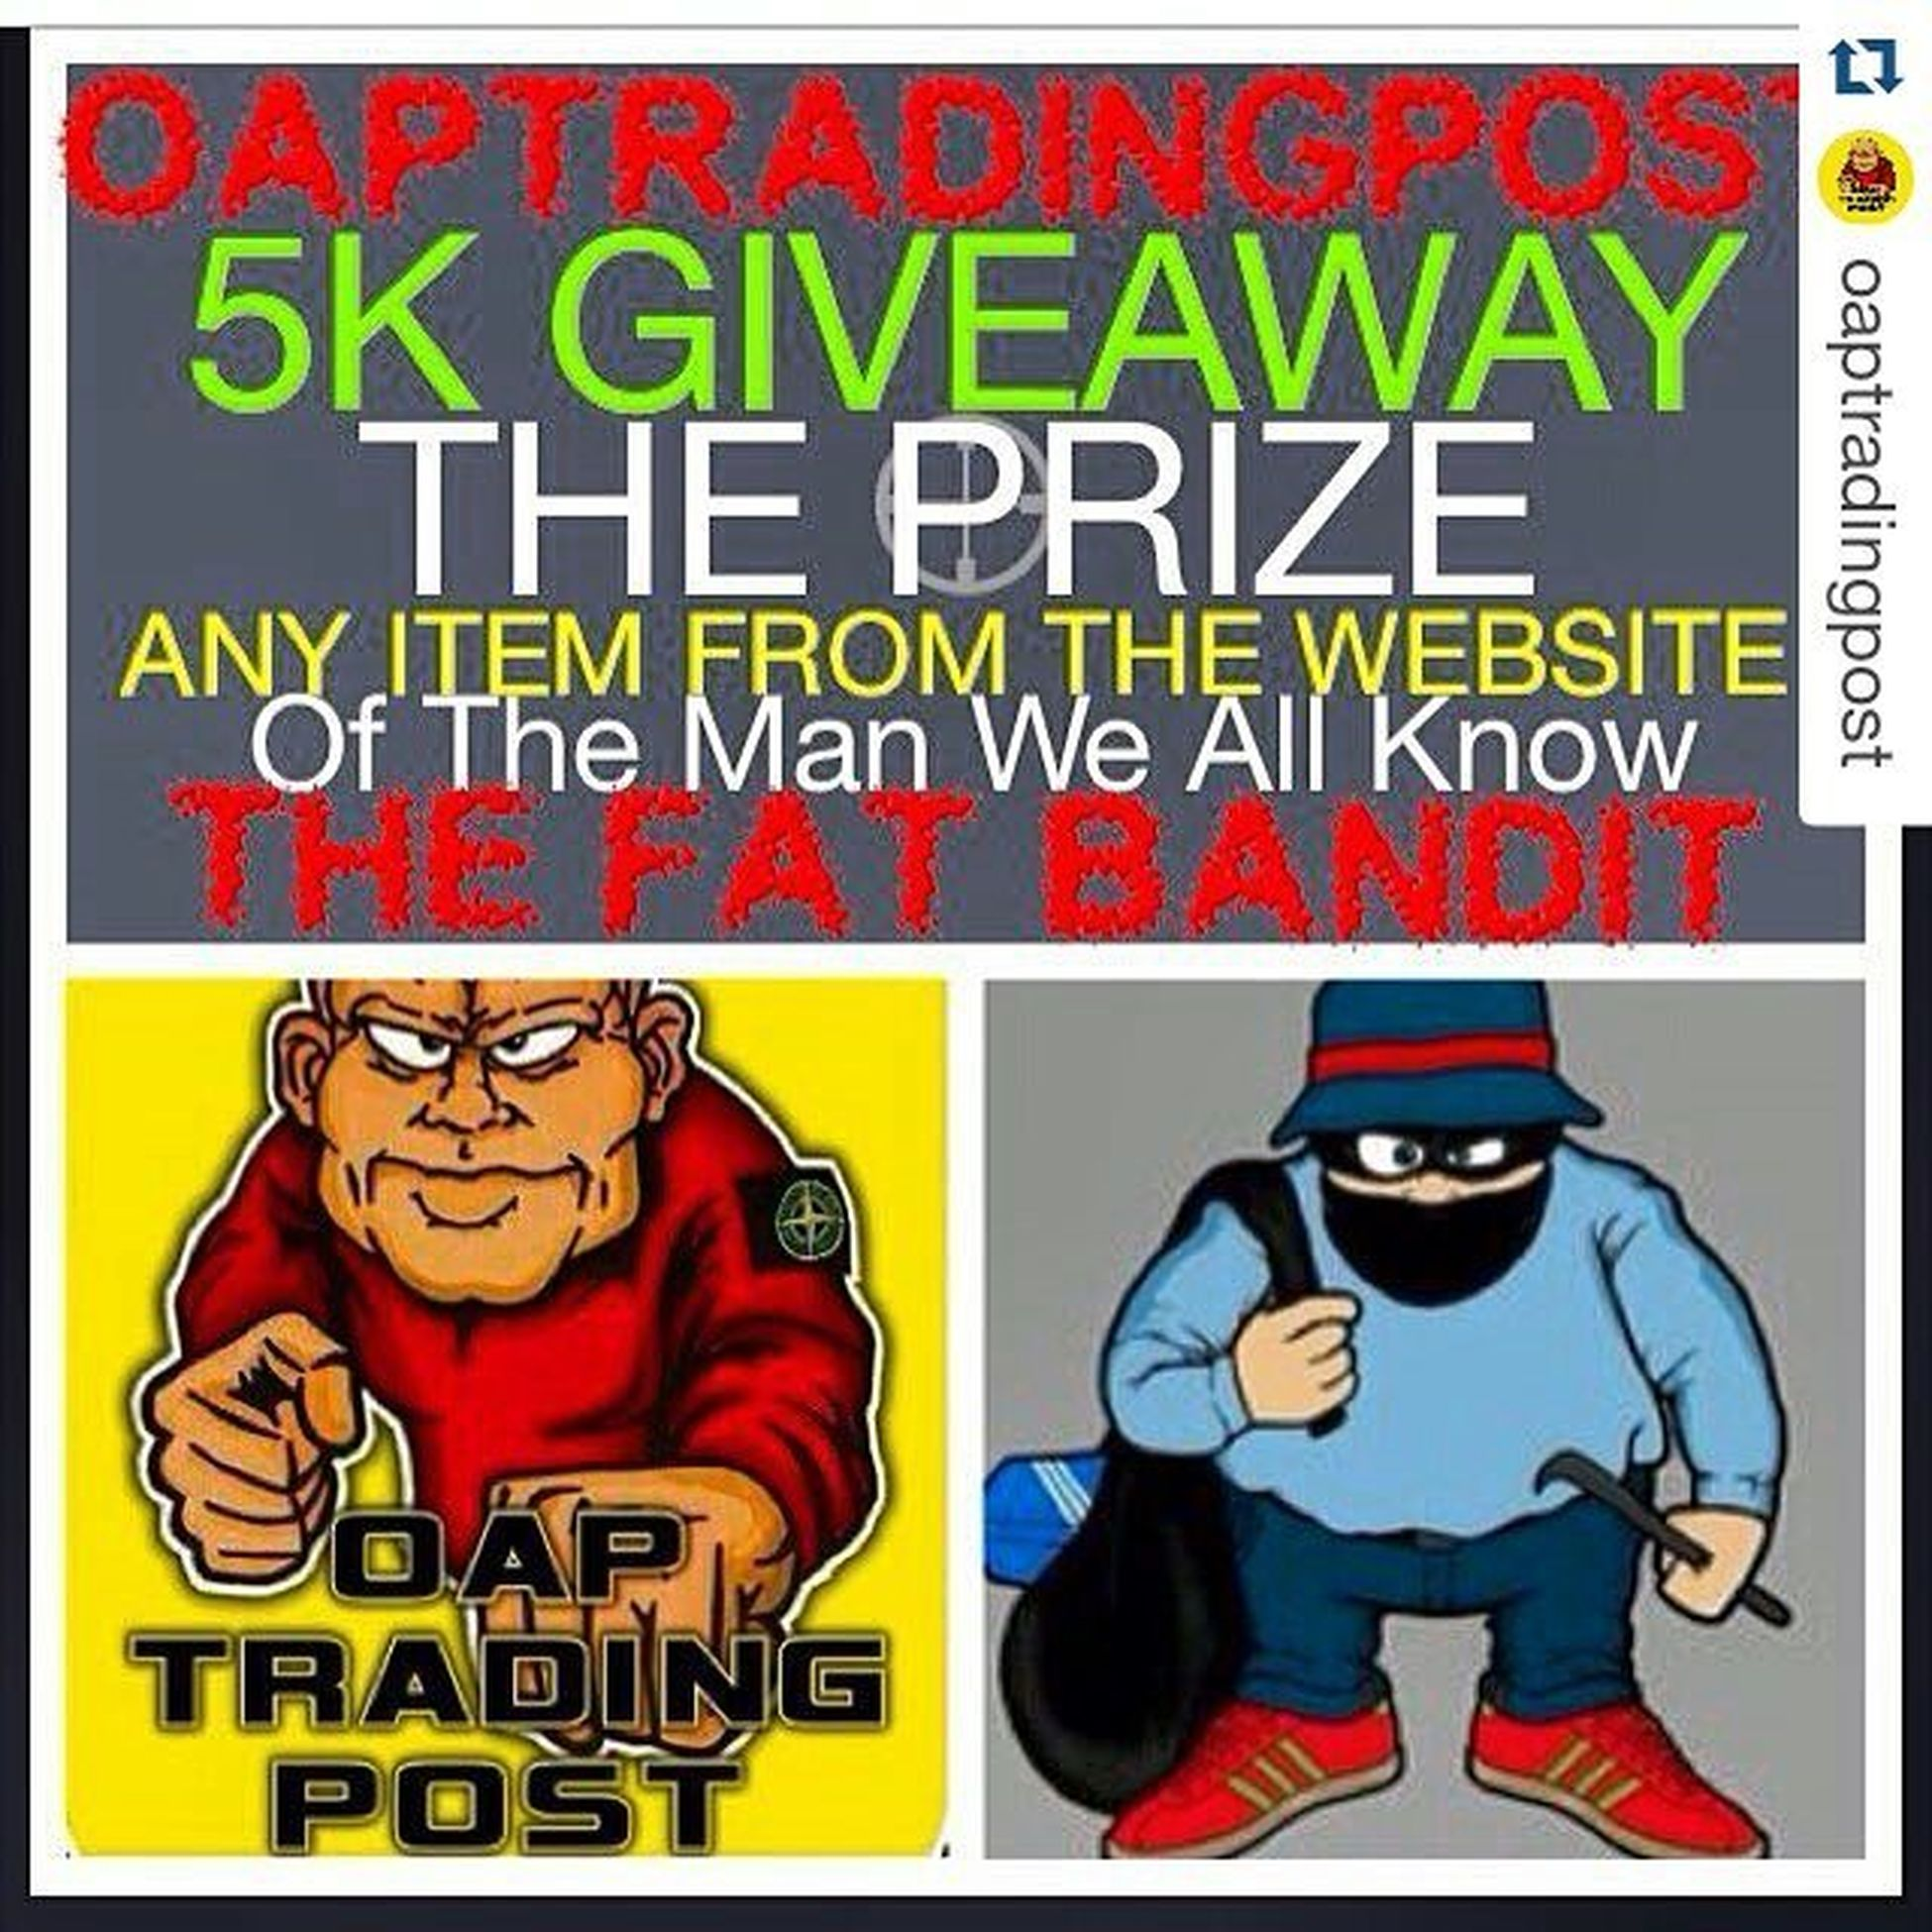 Come on!!! 100% LEGIT GIVEAWAY AT 5k👊🏻, . REPOST THIS POST WITH THE HASHTAG -- Fatoapvin Fatoapvin , & TAG 1 FRIEND 👍🏻, . MAKE SURE YOU ARE FOLLOWING , @oaptradingpost , @the_fat_bandit , @vindidas , , THE PRIZE IS ANY PRODUCT FROM @the_fat_bandit website , . THE WINNER WILL BE CHOSEN BY @vindidas , AT RANDOM AFTER WE HIT 5k FOLLOWERS👍🏻, , IF YOU HAVE YOUR PAGE ON PRIVATE THEN OPEN IT PEOPLE OR WE WONT SEE YOUR ENTRY, . @theoapcasualdresser @the_fat_bandit @vindidas @theoapcasualdresser Giveaway Casual Clobber Terrace Casuals THISISAREALGIVEAWAY Fact